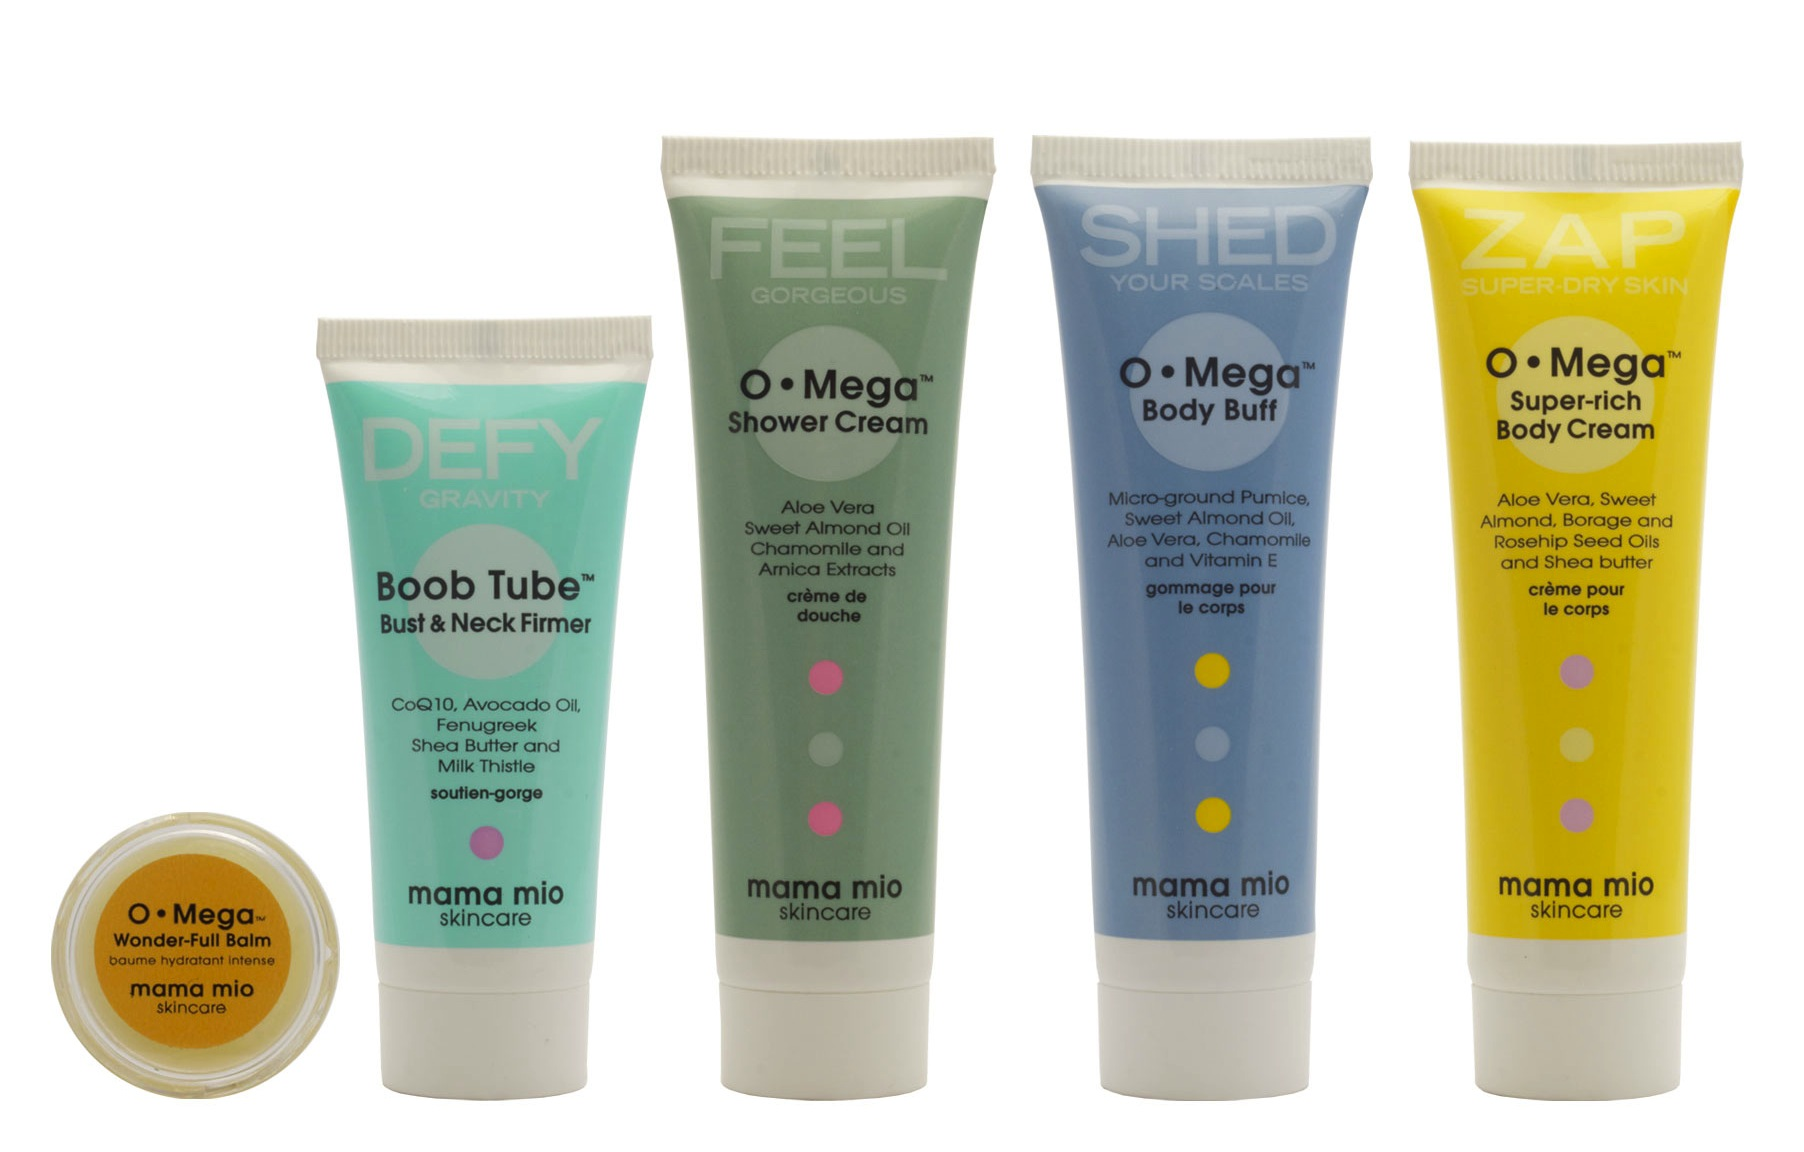 Go Ahead and Defy Gravity with Boob Tube Bust & Neck Firmer by Mama Mio